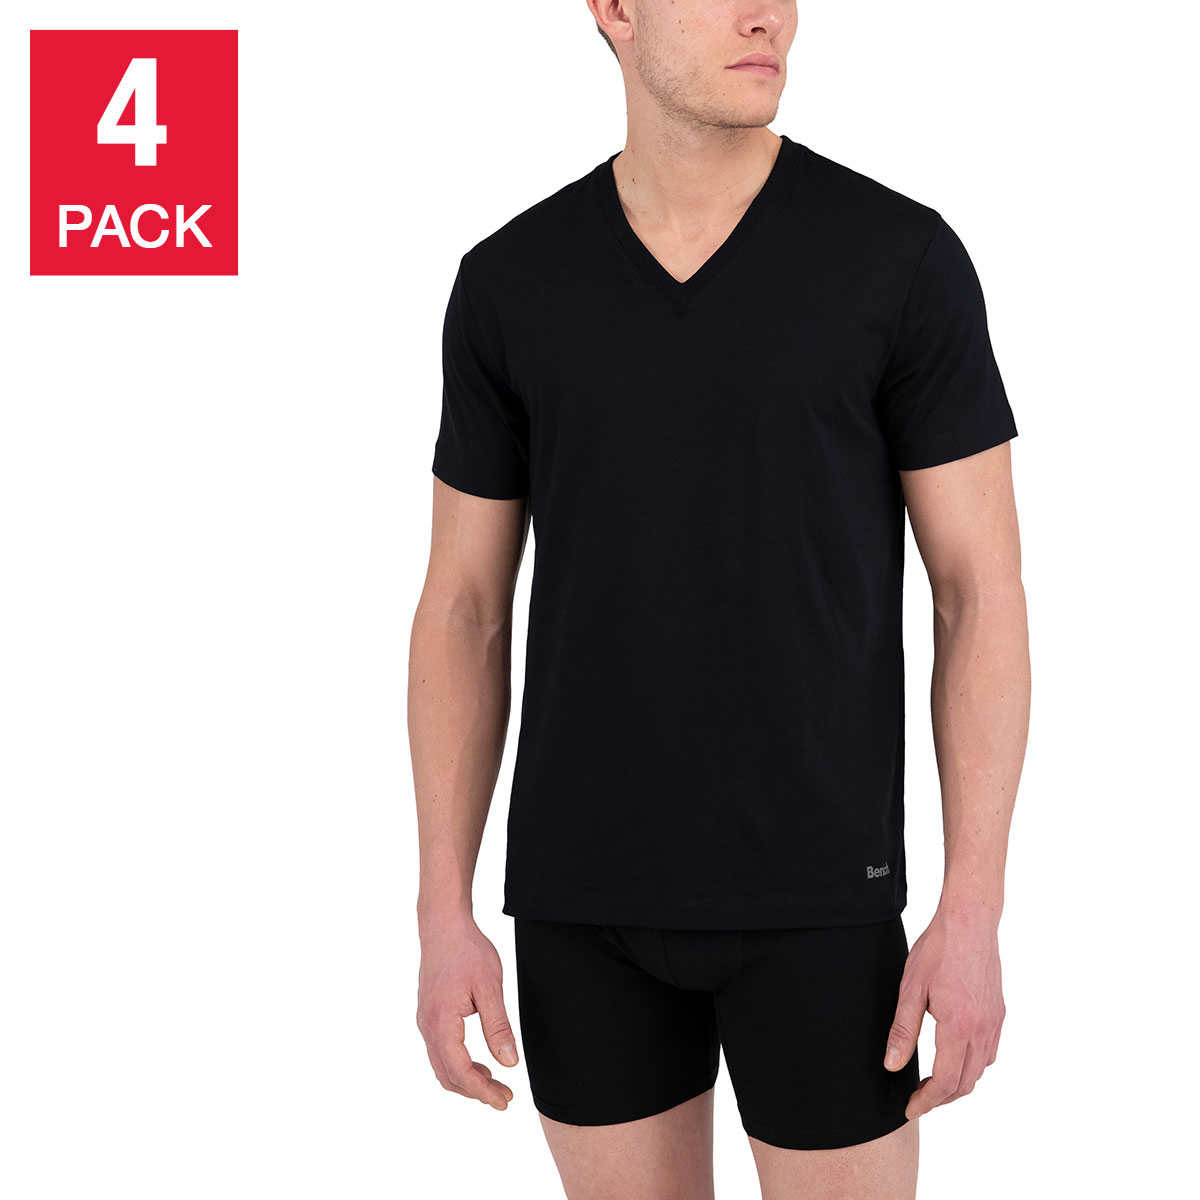 Bench Men S V Neck T Shirt 4 Pack